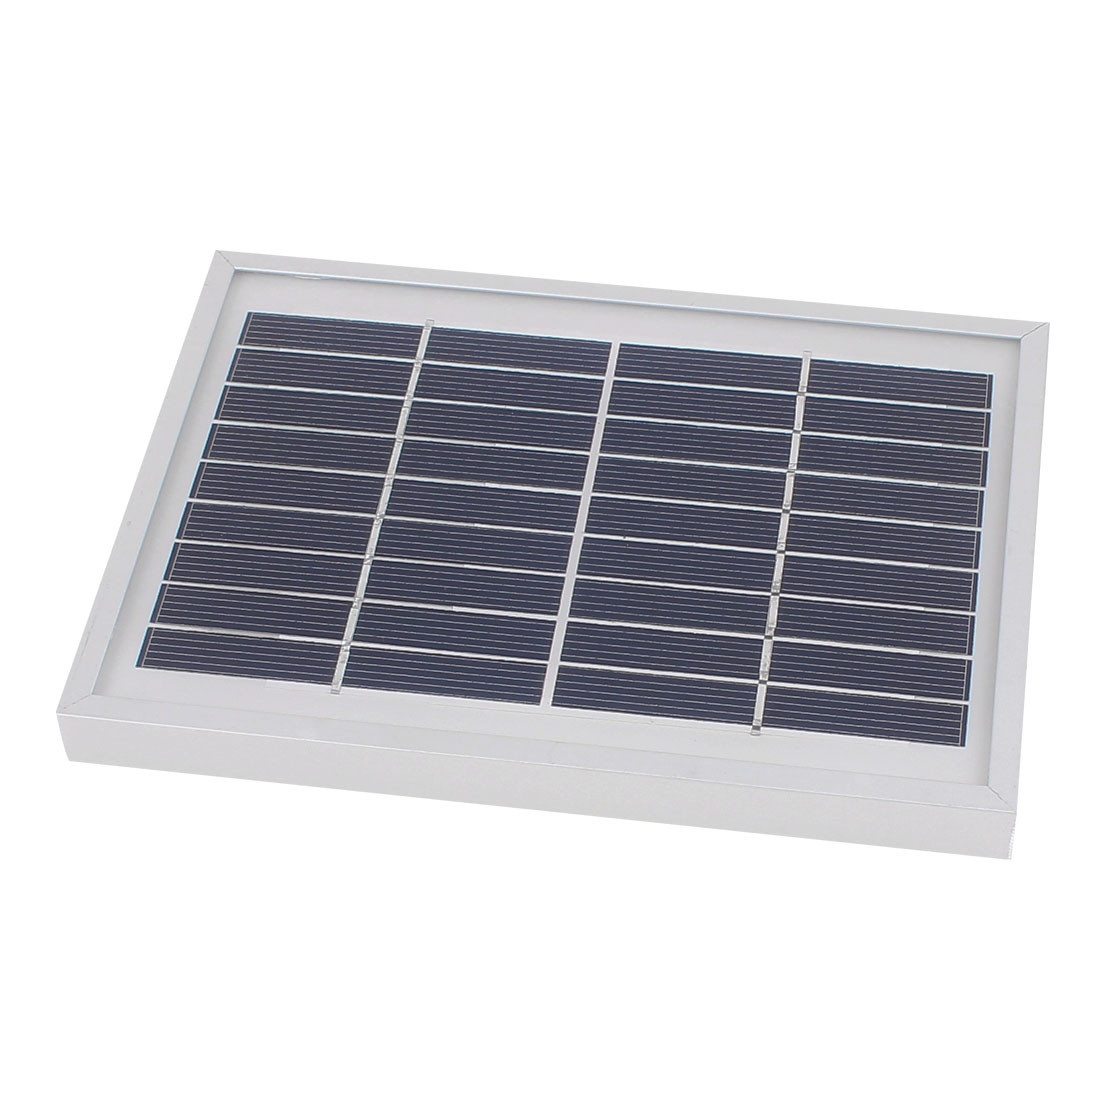 9V 2W DIY Polycrystallinesilicon Solar Panel Power Cell Battery Charger 180mm x 130mm x 15mm